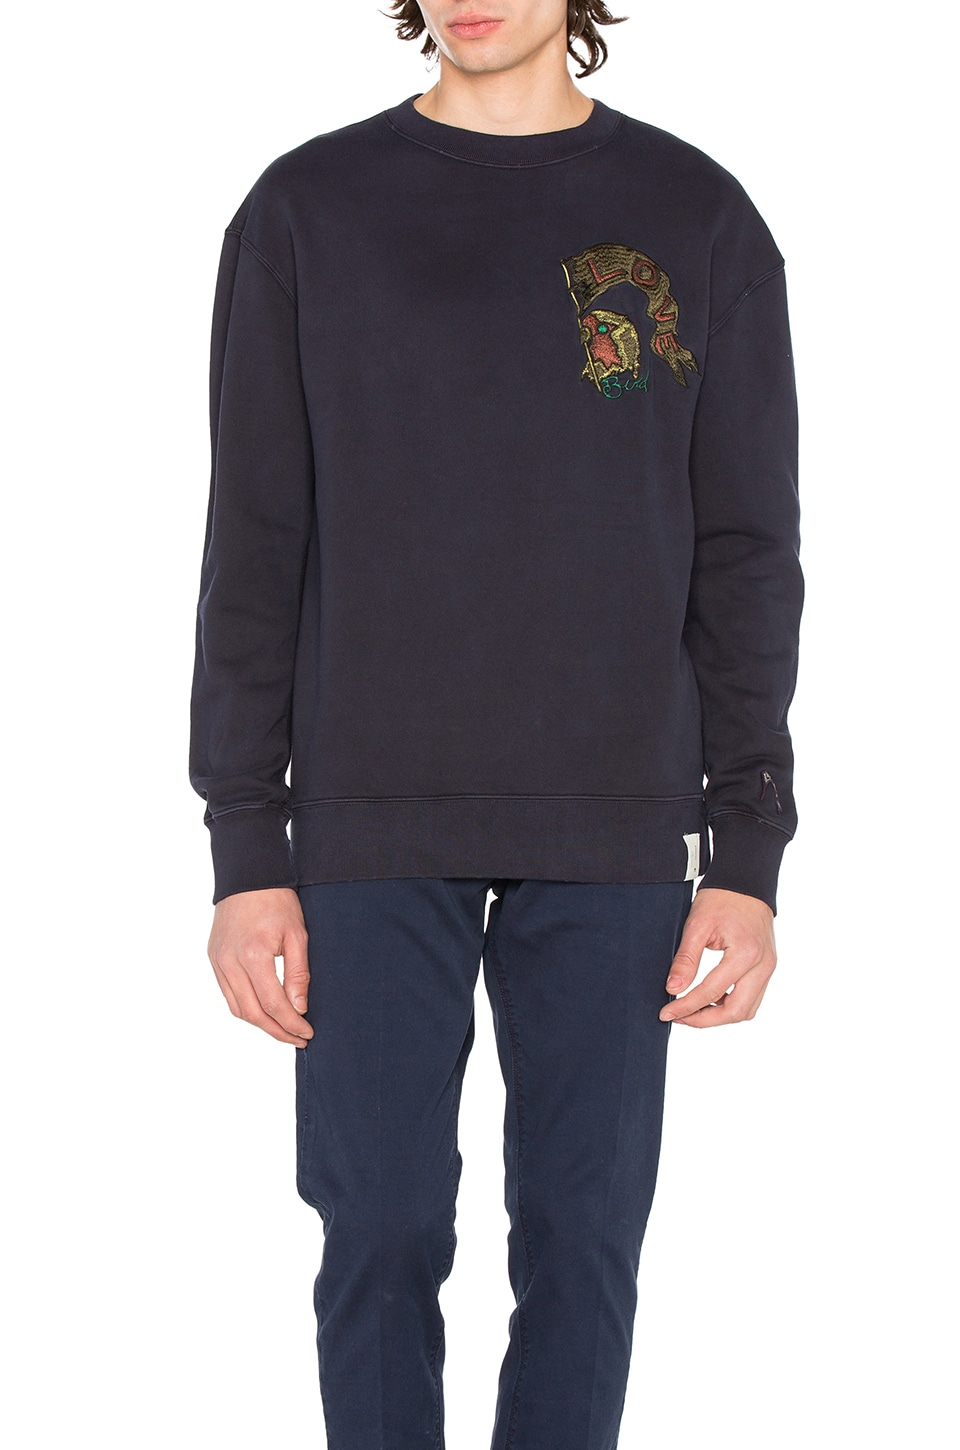 Chest Detail Sweatshirt by Scotch & Soda